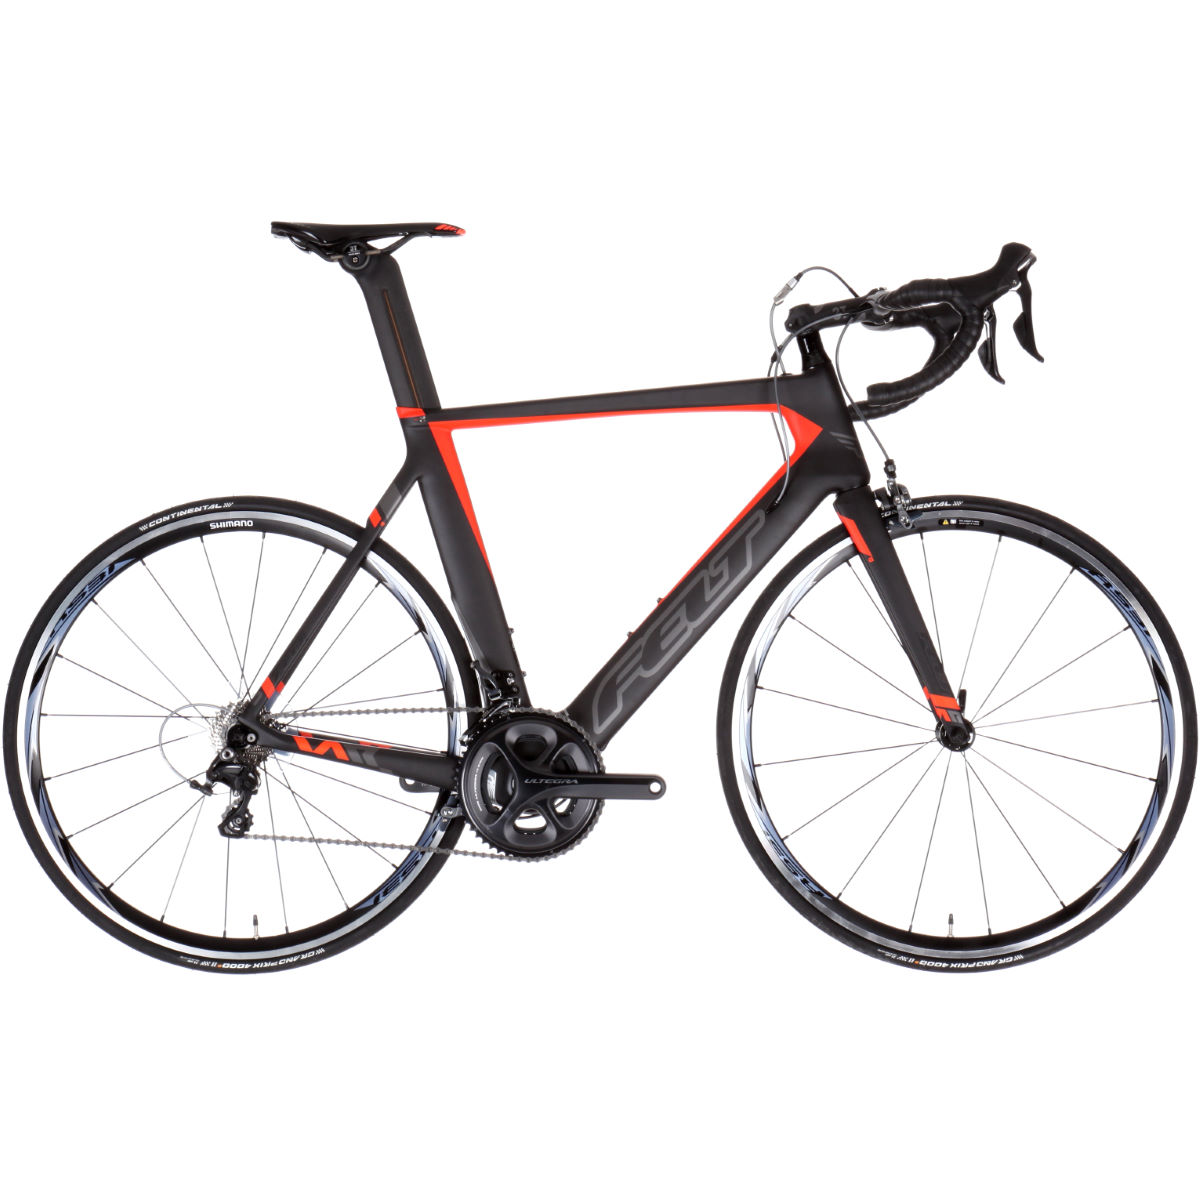 Vélo de route Felt AR3 (2017) - 56cm Stock Bike Noir/Orange